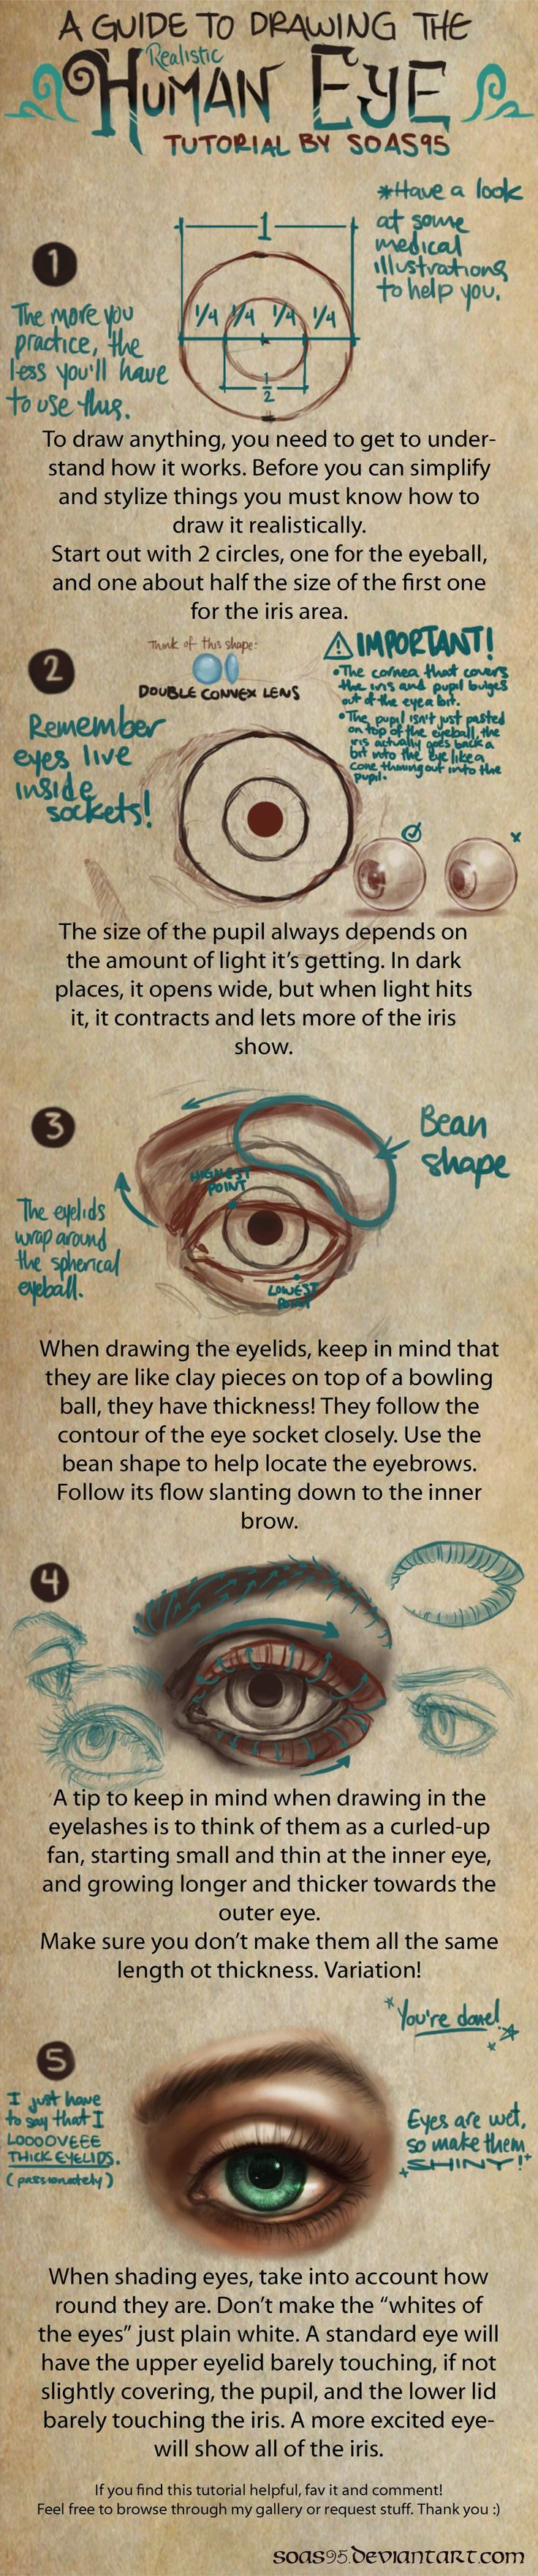 Human Eye- TUTORIAL by *soas95 on deviantART http://soas95.deviantart.com/art/Human-Eye-TUTORIAL-392610867